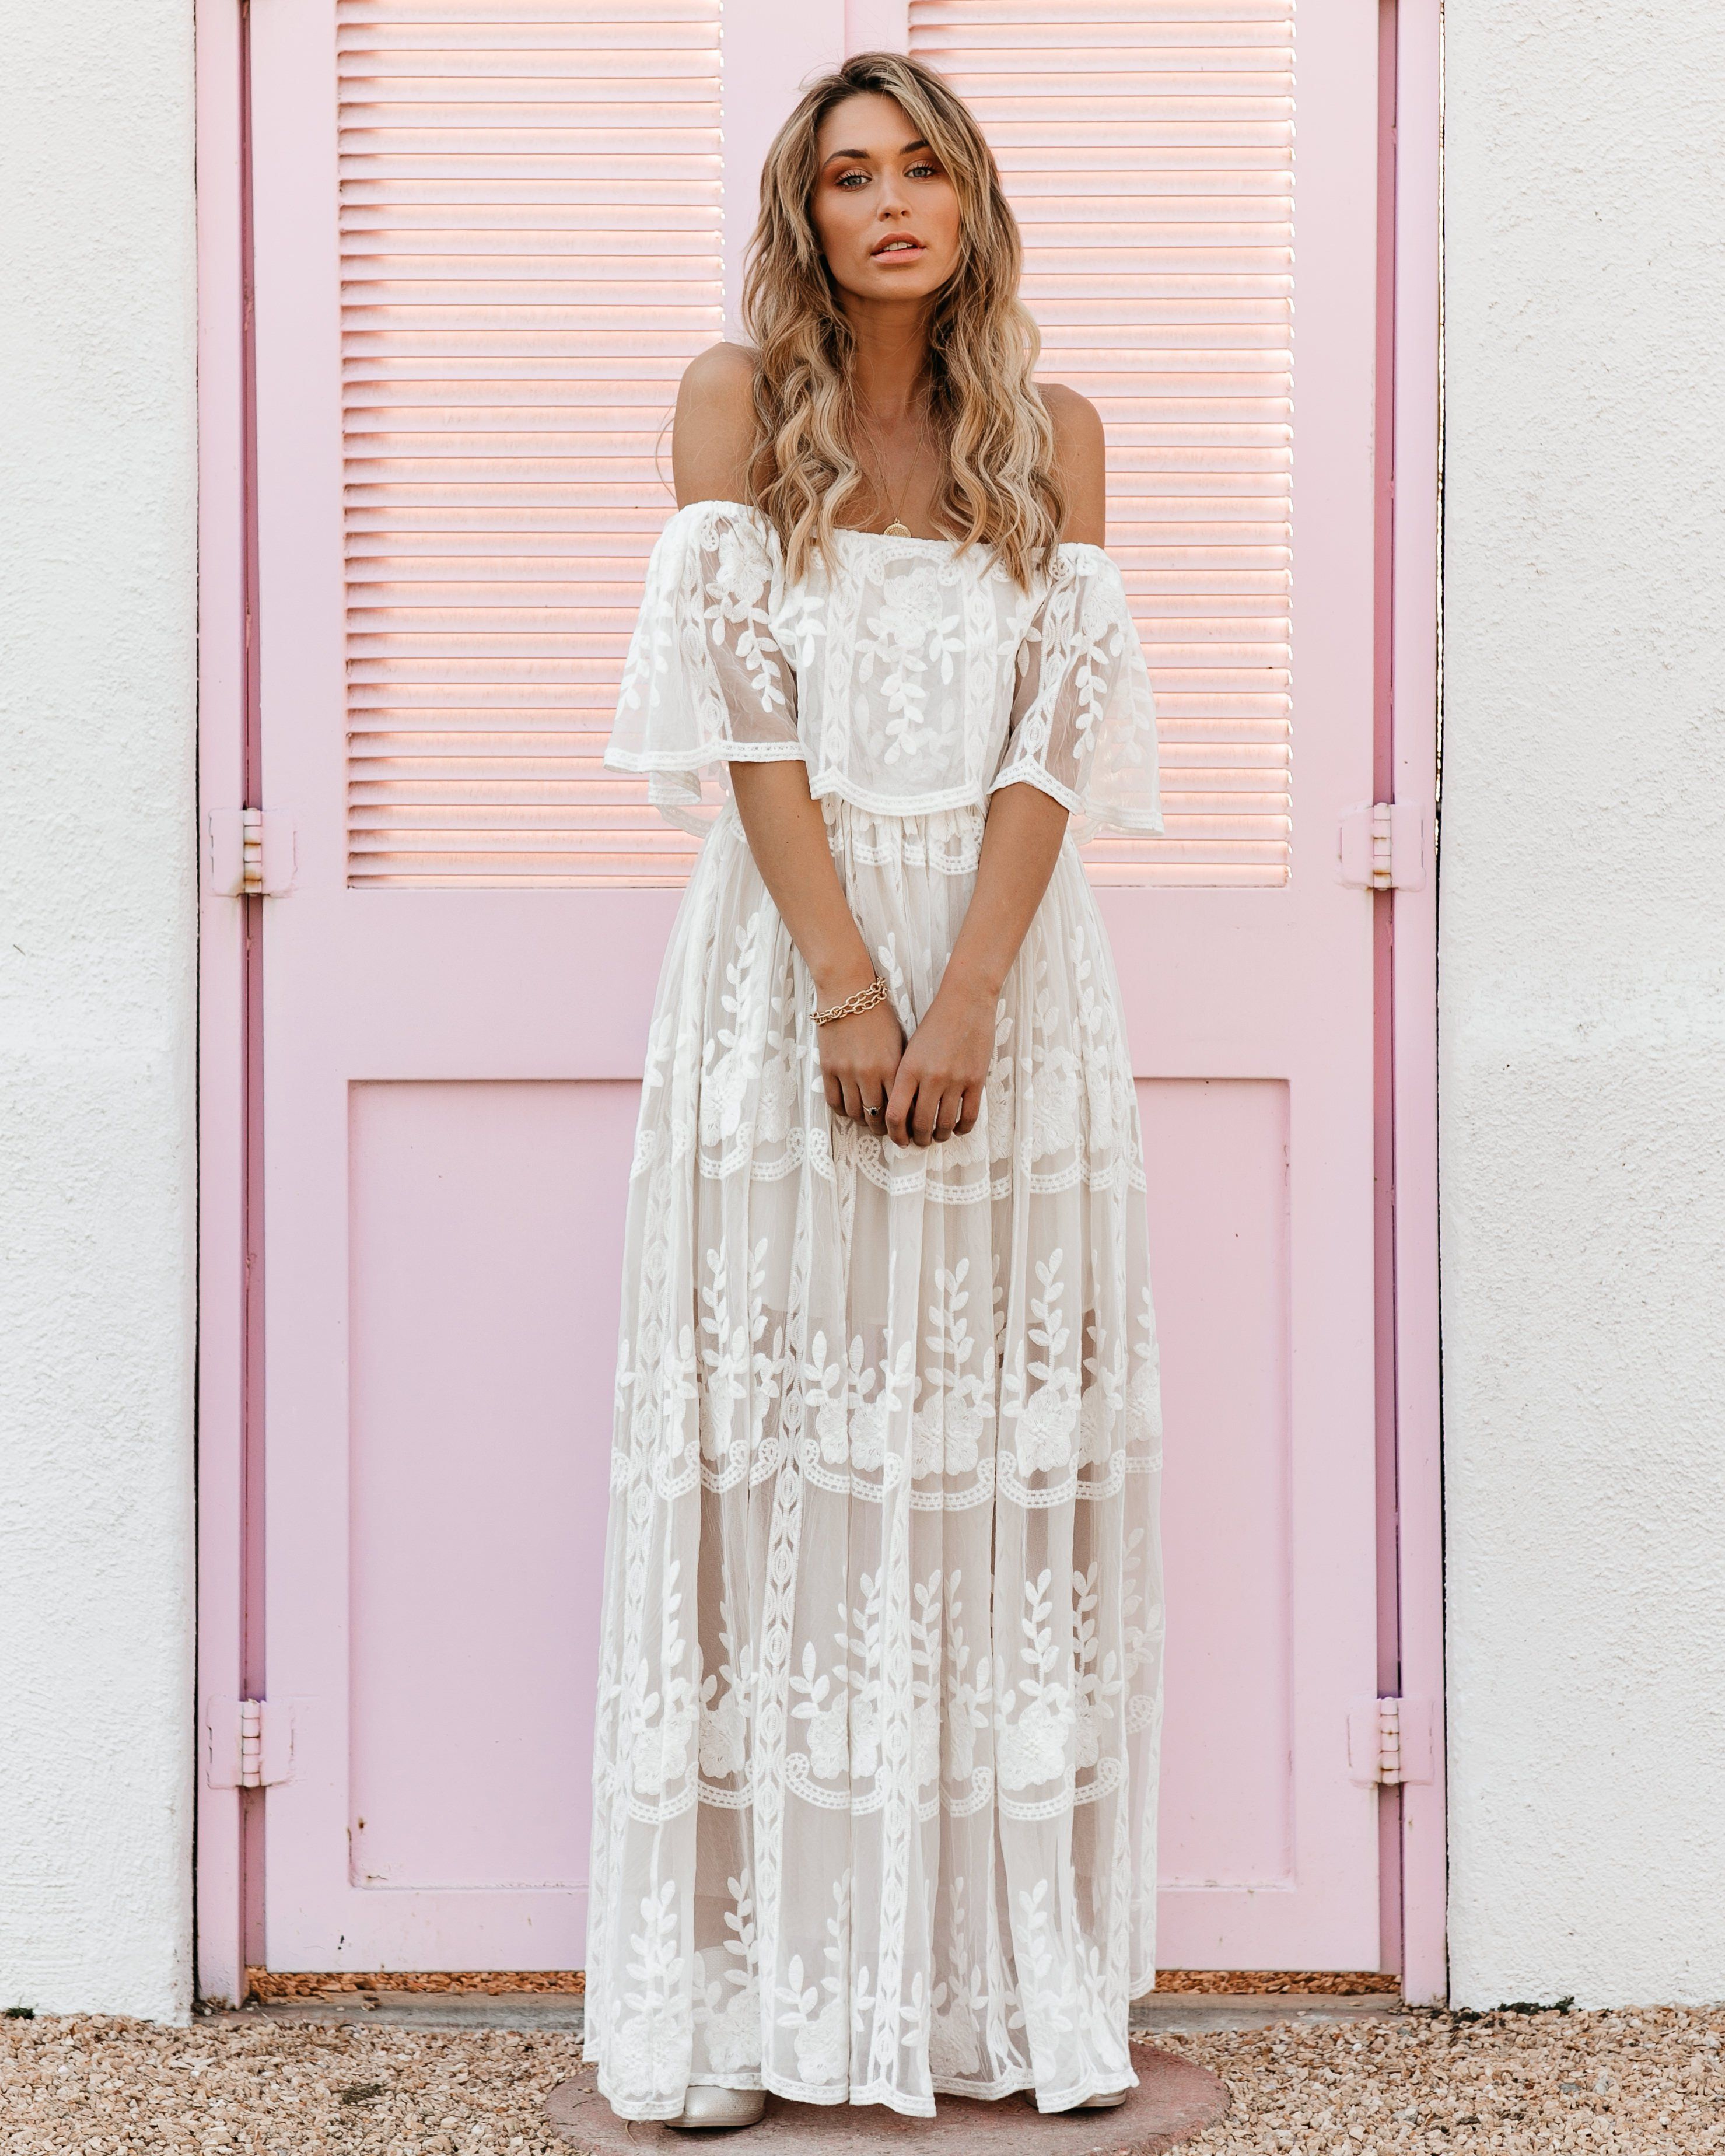 Preorder Our Together Is Forever Off The Shoulder Lace Maxi Dress Lace Maxi Dress Maxi Dress White Lace Maxi [ 3696 x 2957 Pixel ]